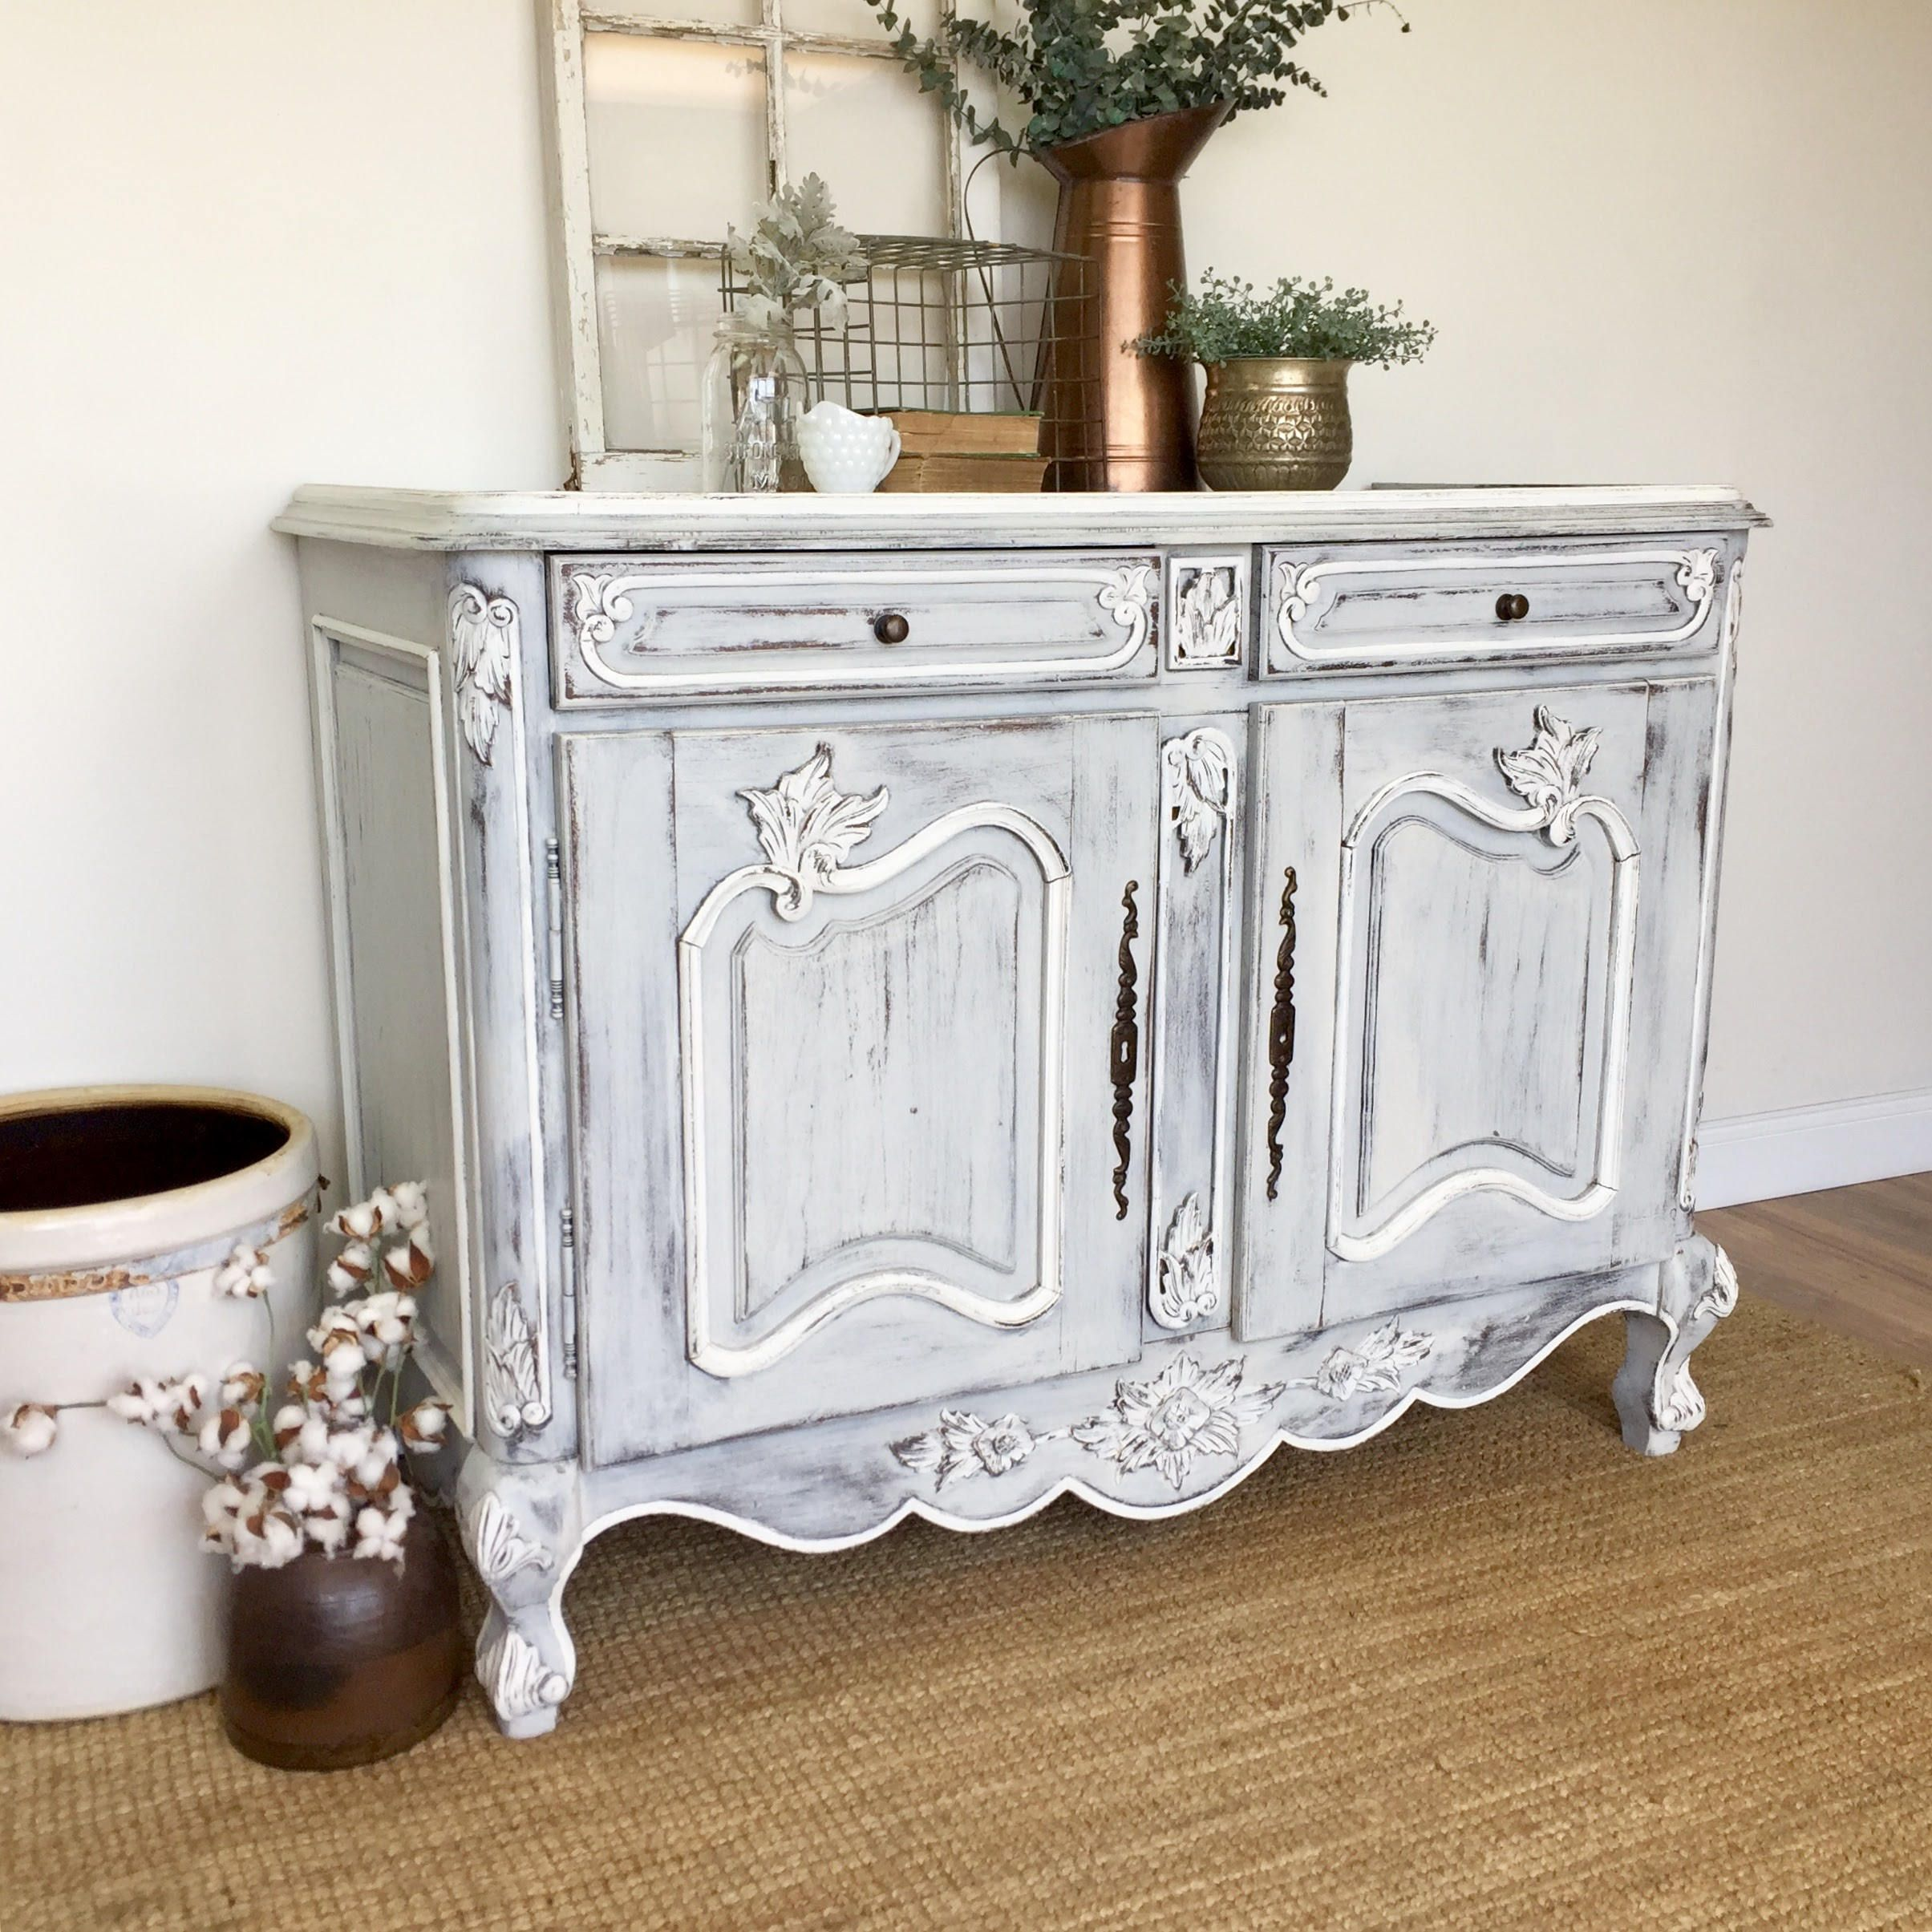 Vintage Decor And Distressed Furniture In Sparta Township Nj Vintage Hip Decor French Shabby Chic Furniture Shabby Chic Dresser Shabby Chic Furniture